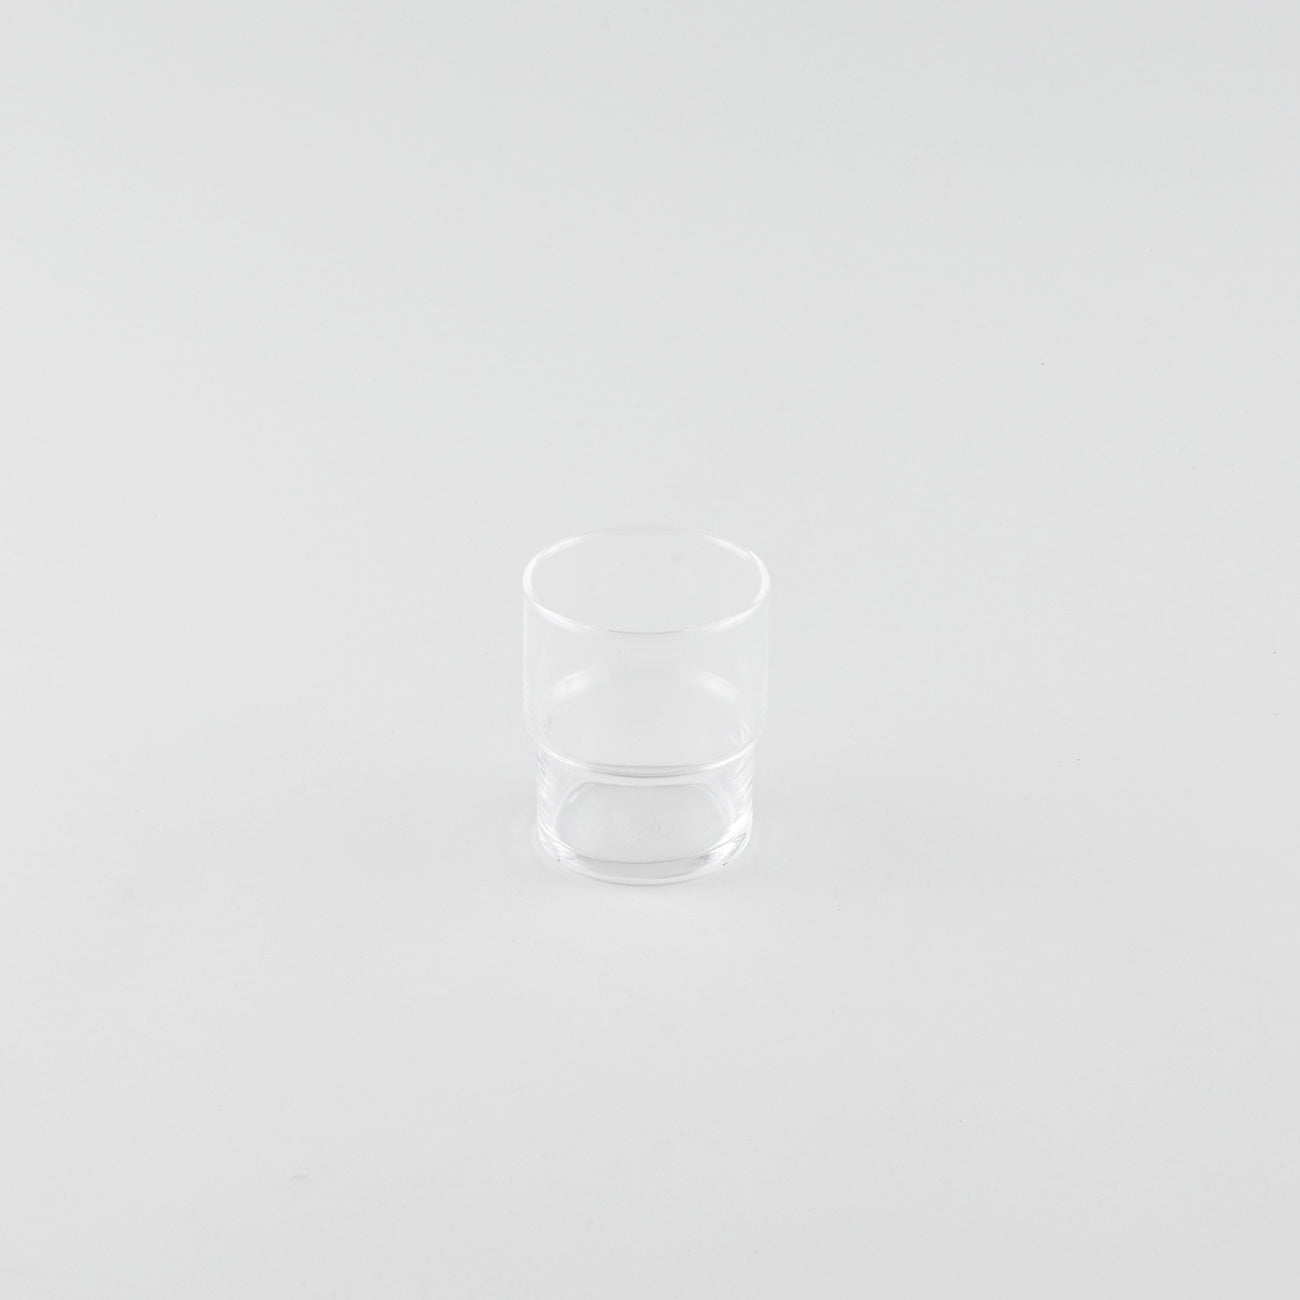 Short Glass Cup - TUMBLER (S)